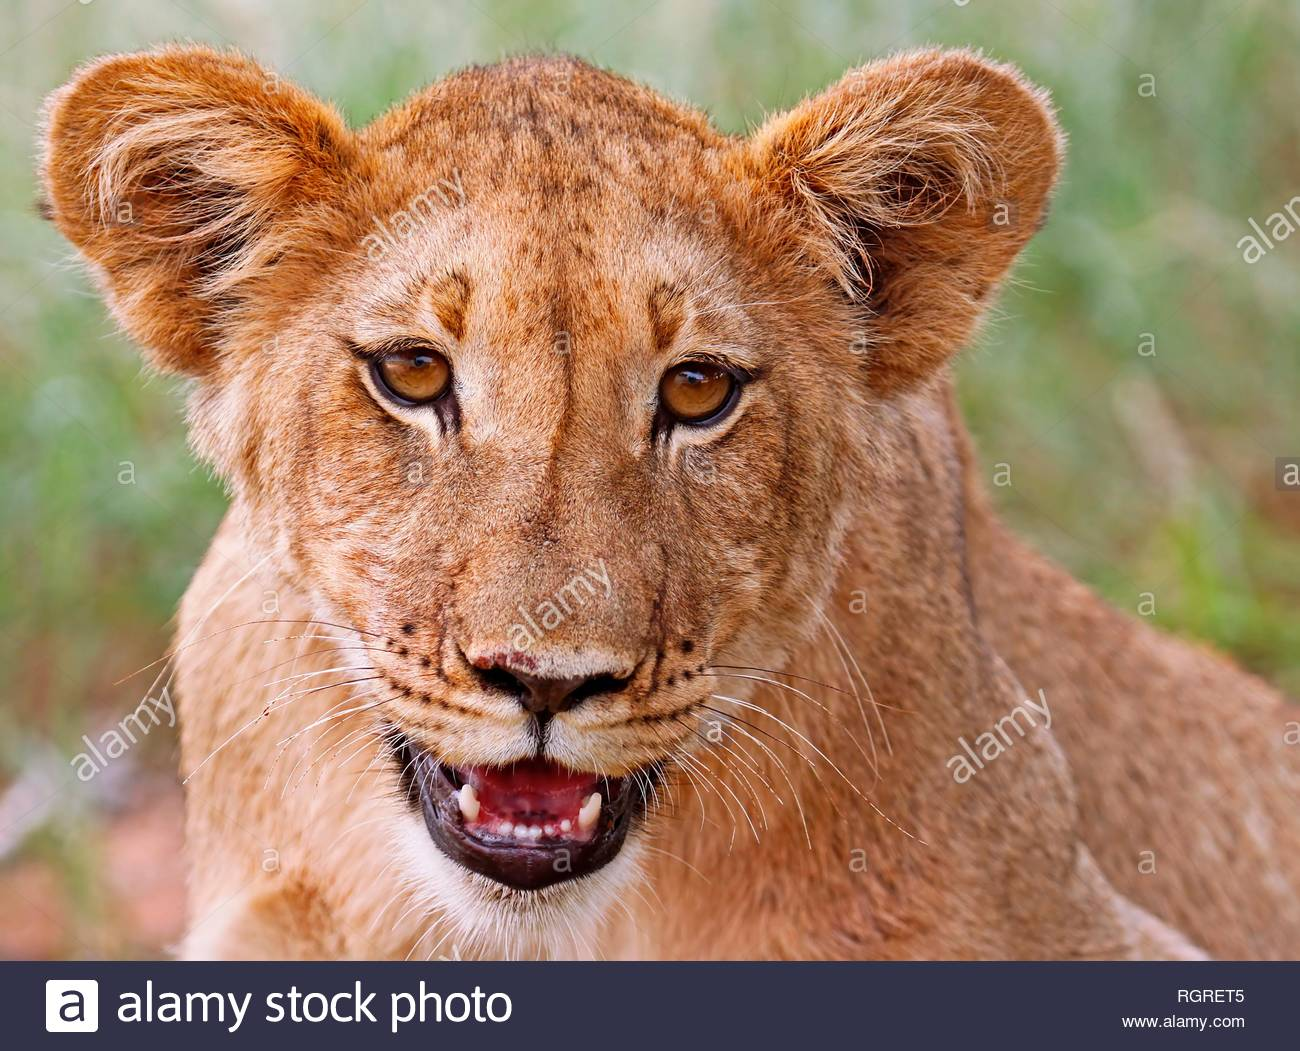 young lion, Kgalagadi Transfrontier National Park, South Africa, (Panthera leo) - Stock Image